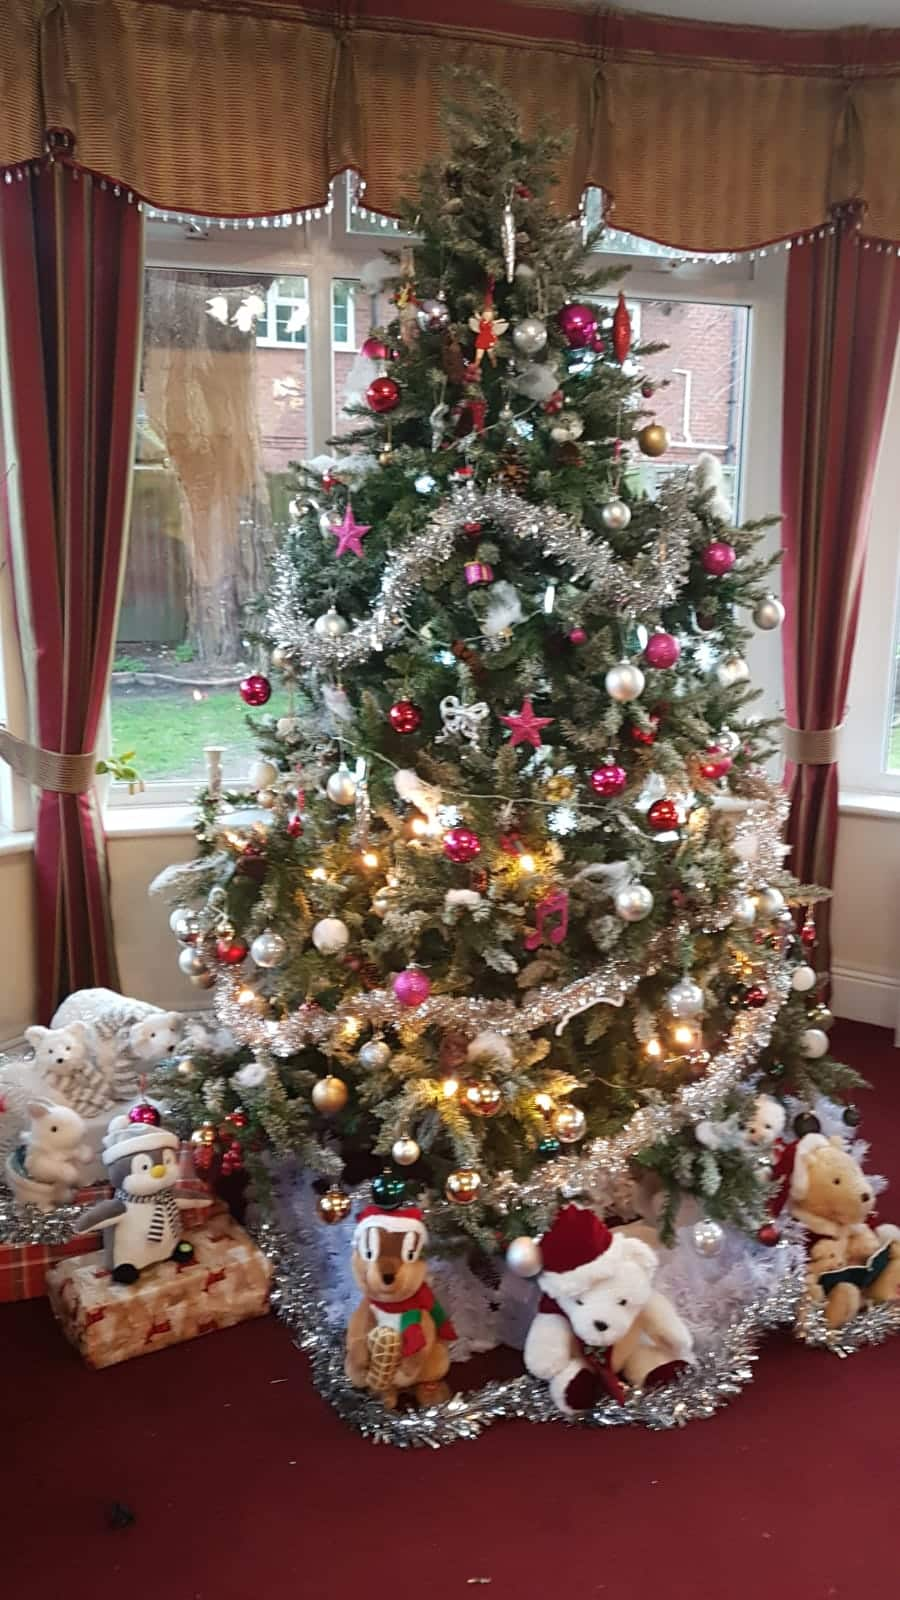 Christmas tree at Chalgrove Care Home in Poole